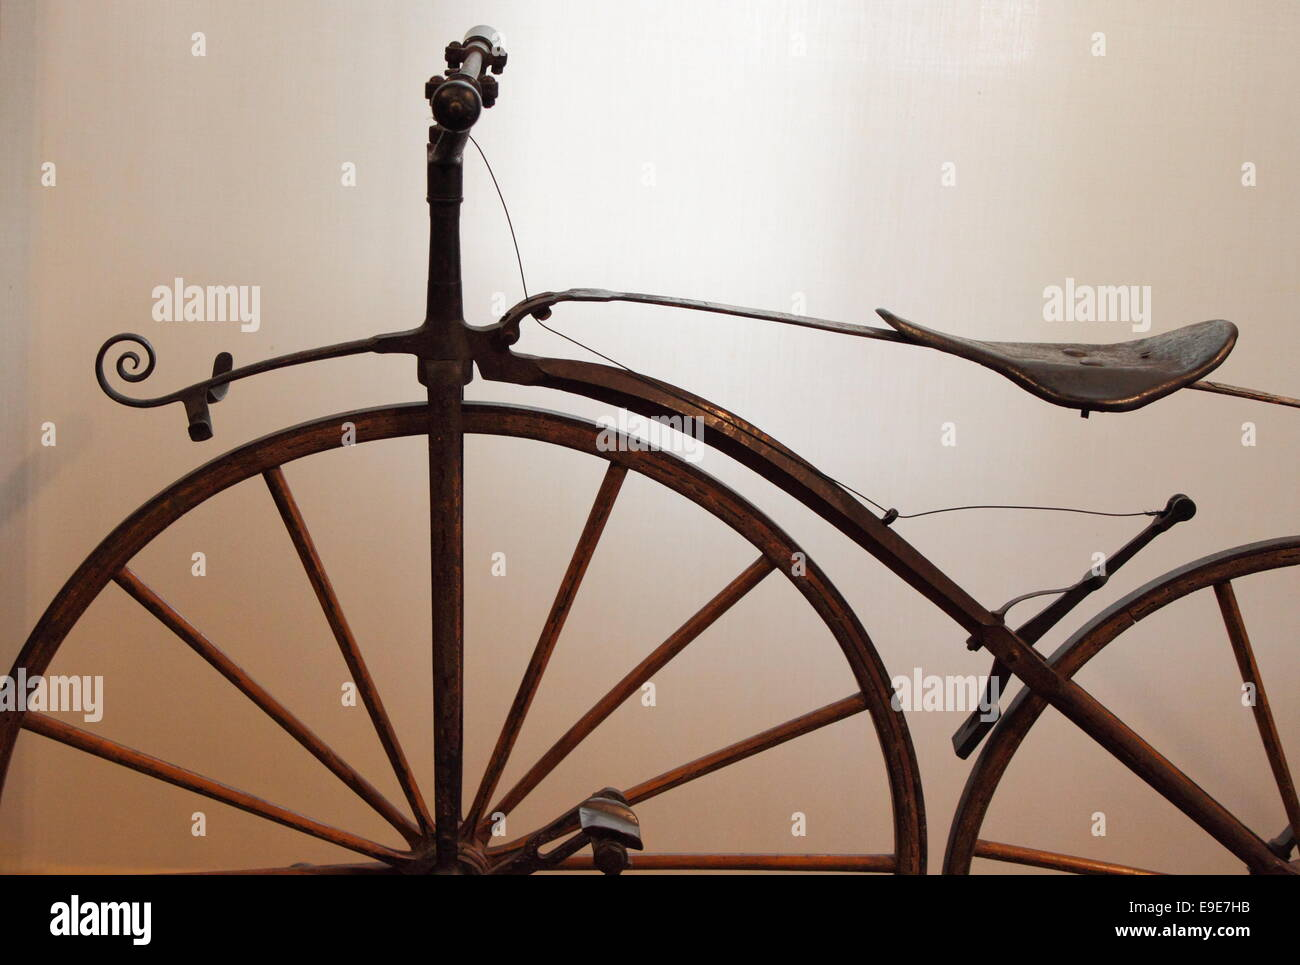 Detailed view of an old times bicycle - Stock Image